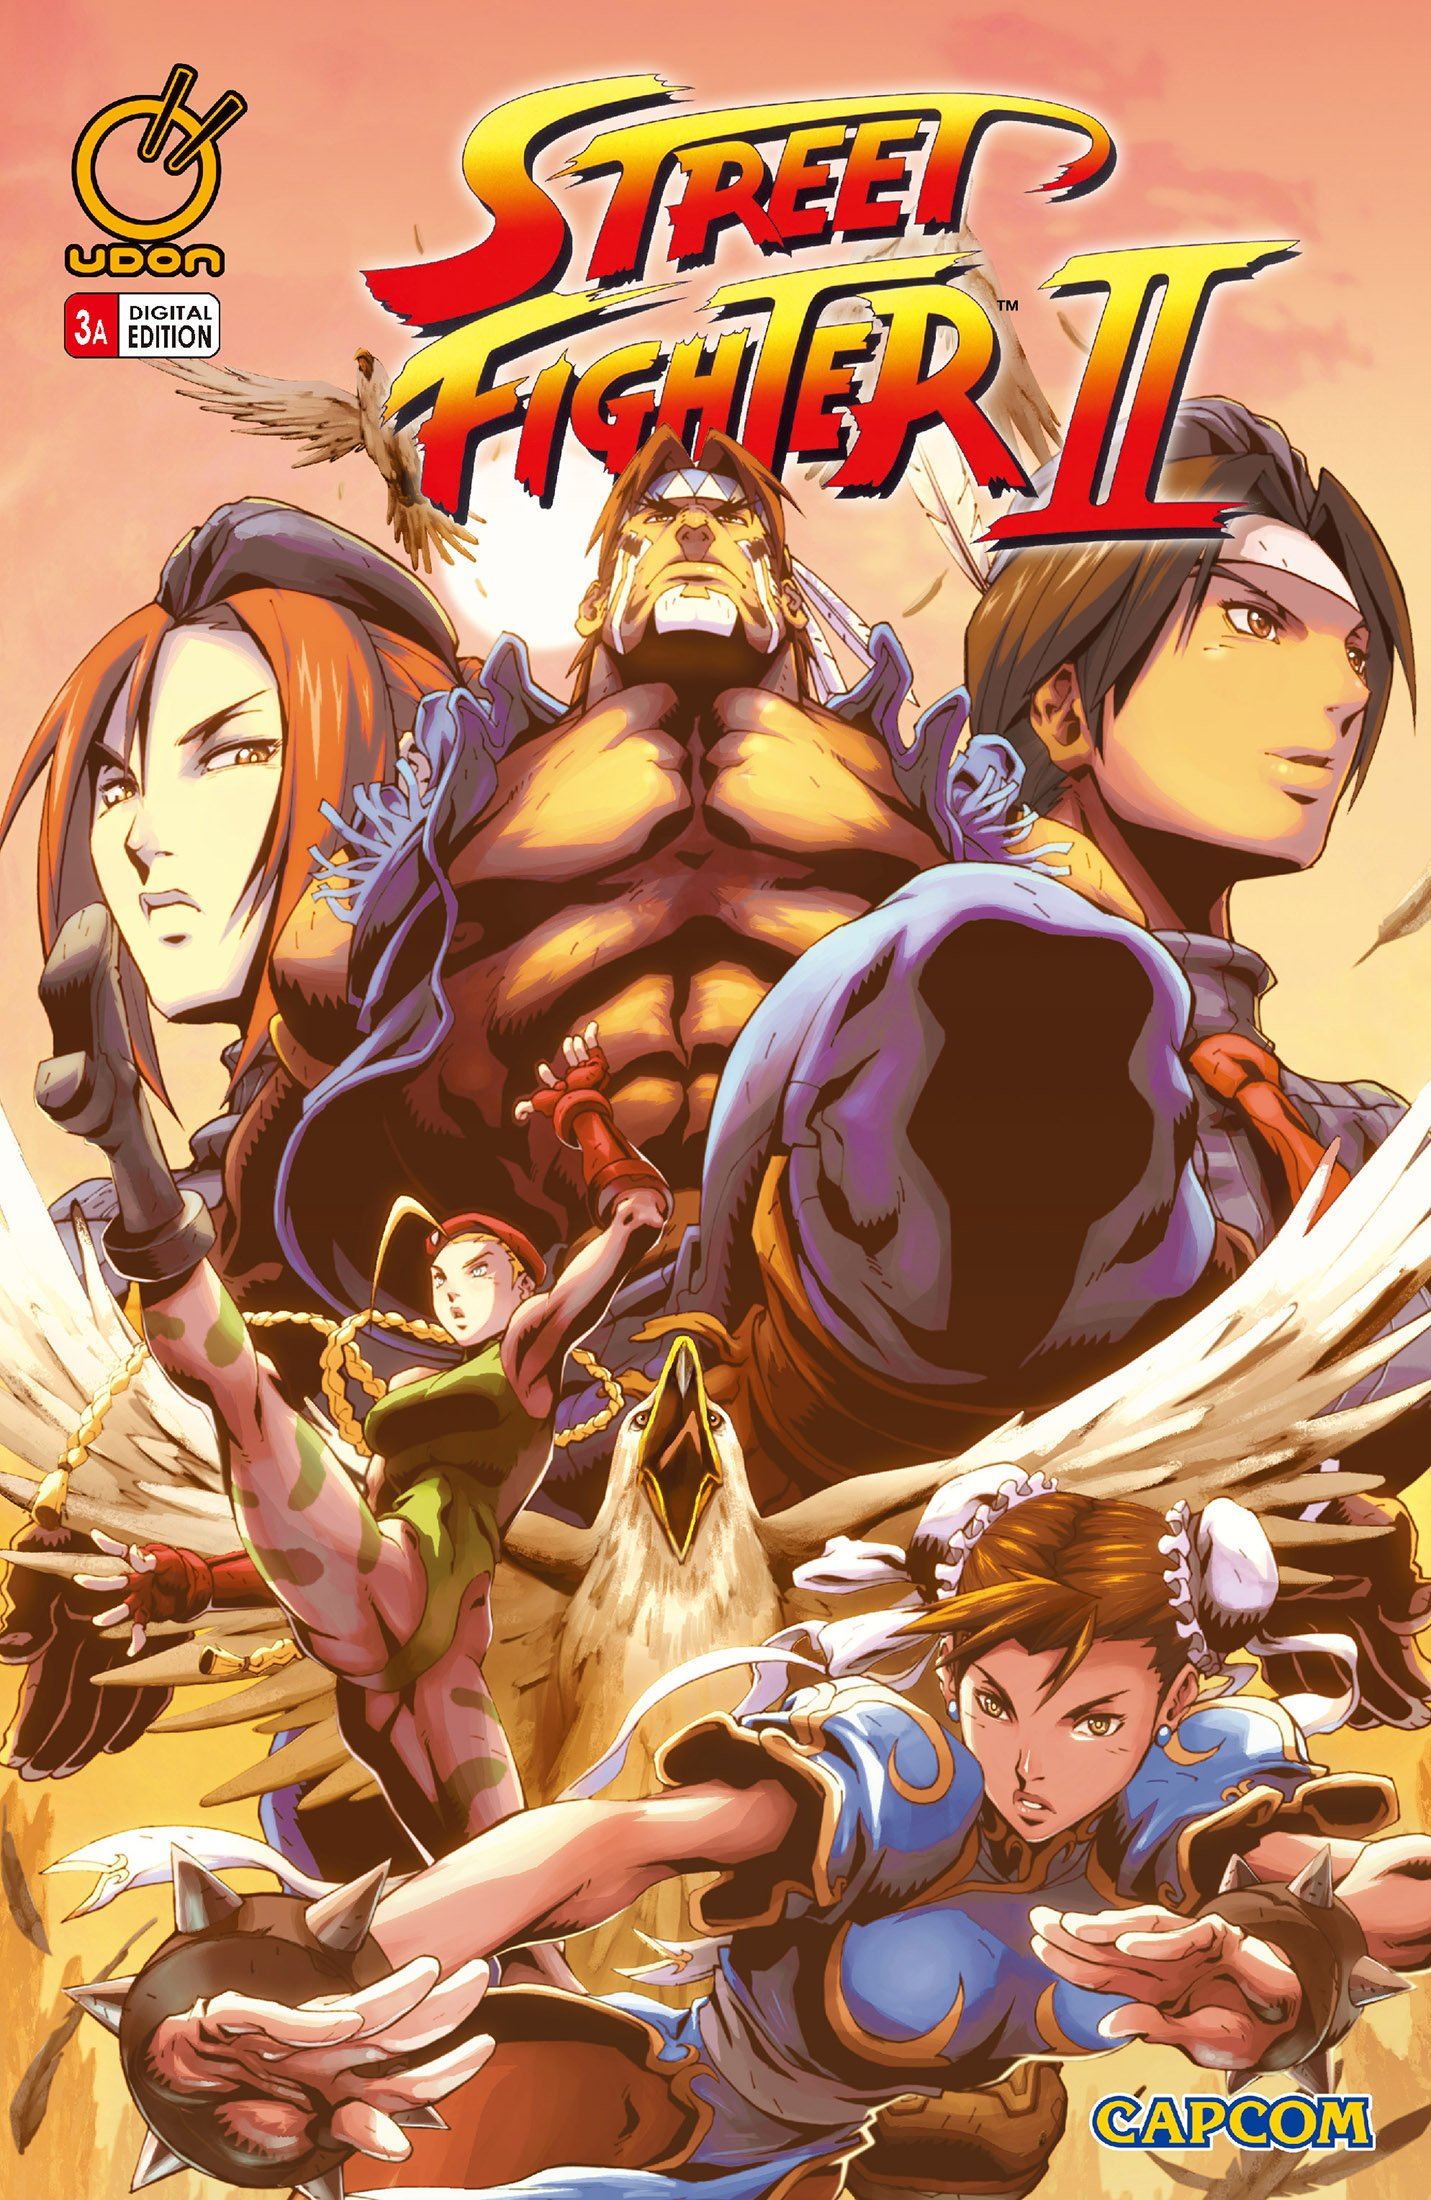 Street Fighter II Issue 3 (February 2006) (cover a)